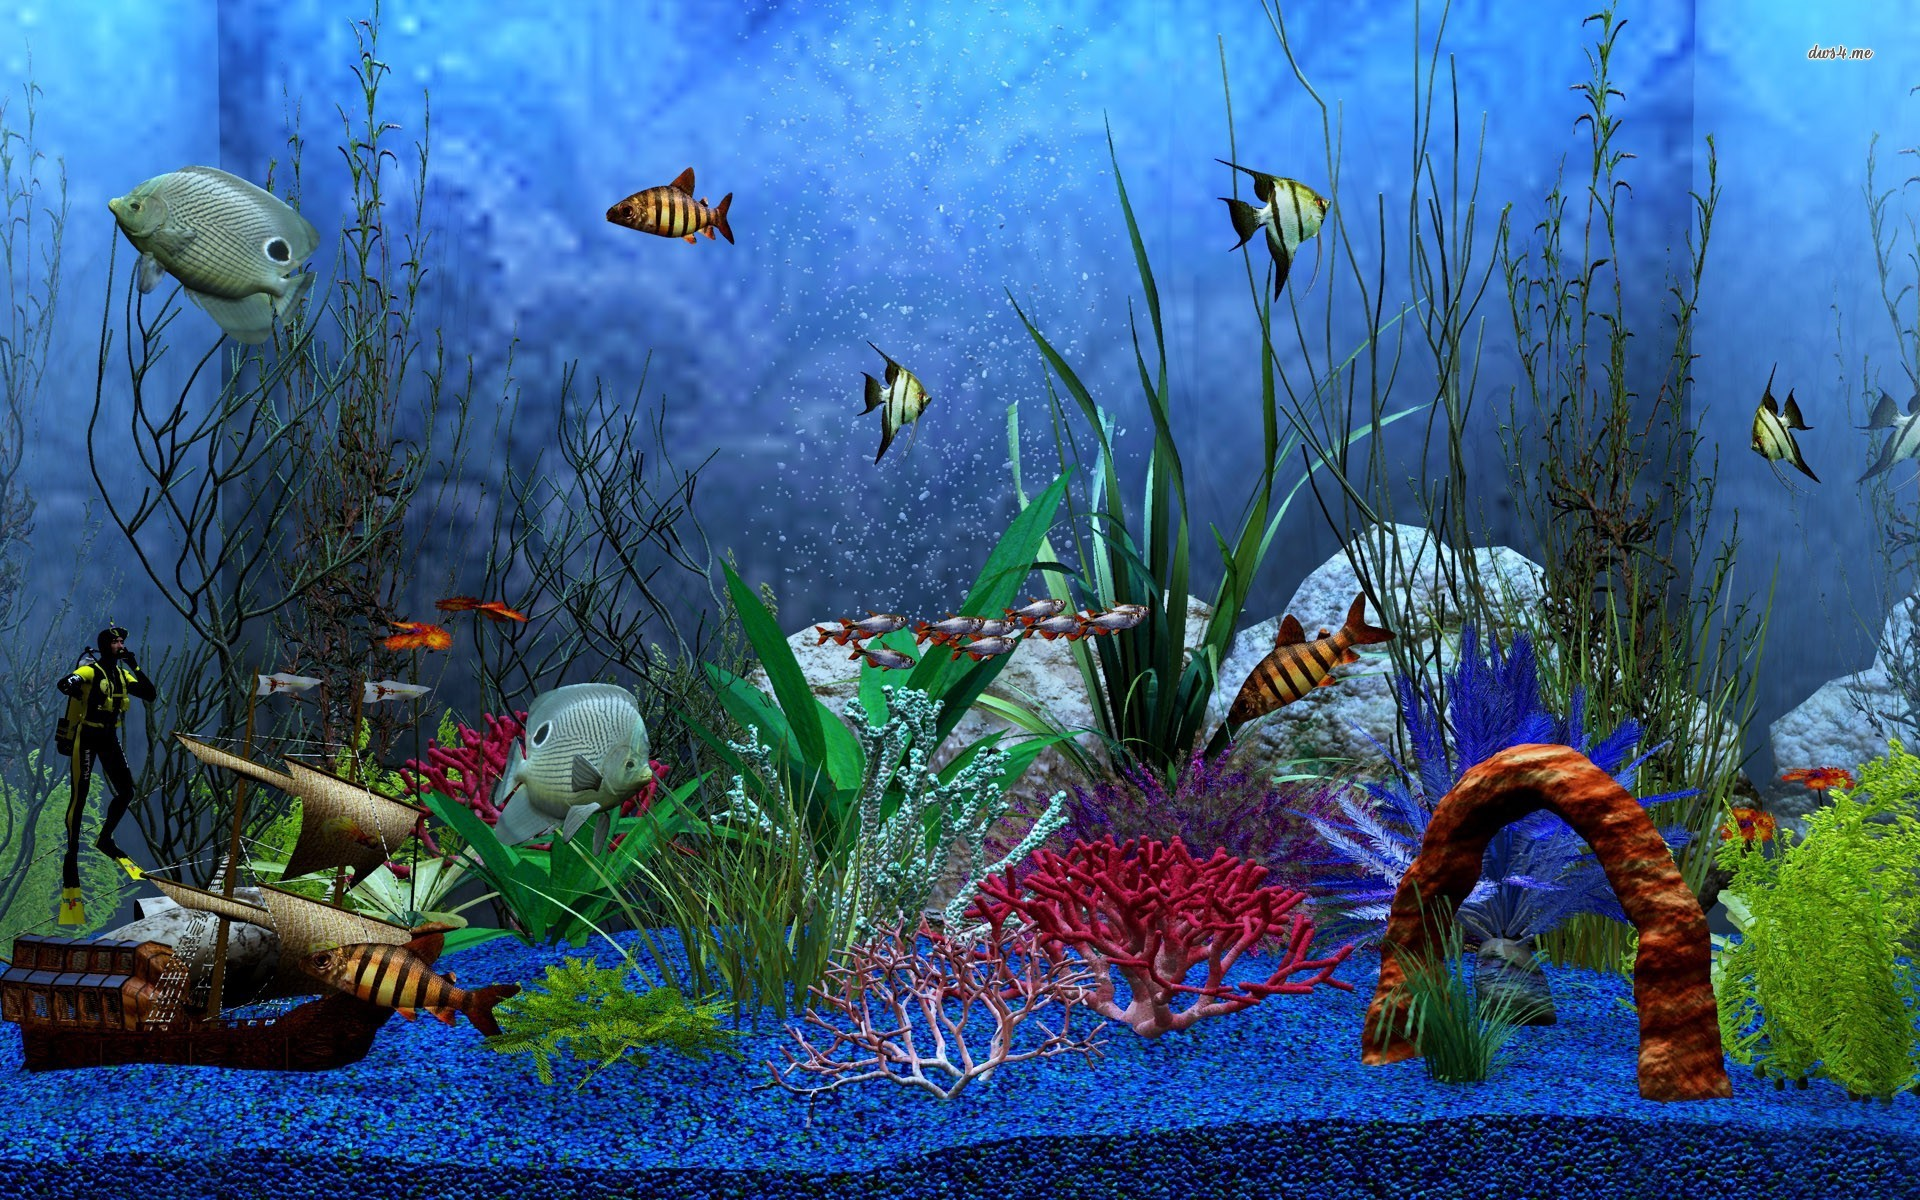 Aquarium hd 1080p wallpaper wallpapersafari for Fond ecran aquarium